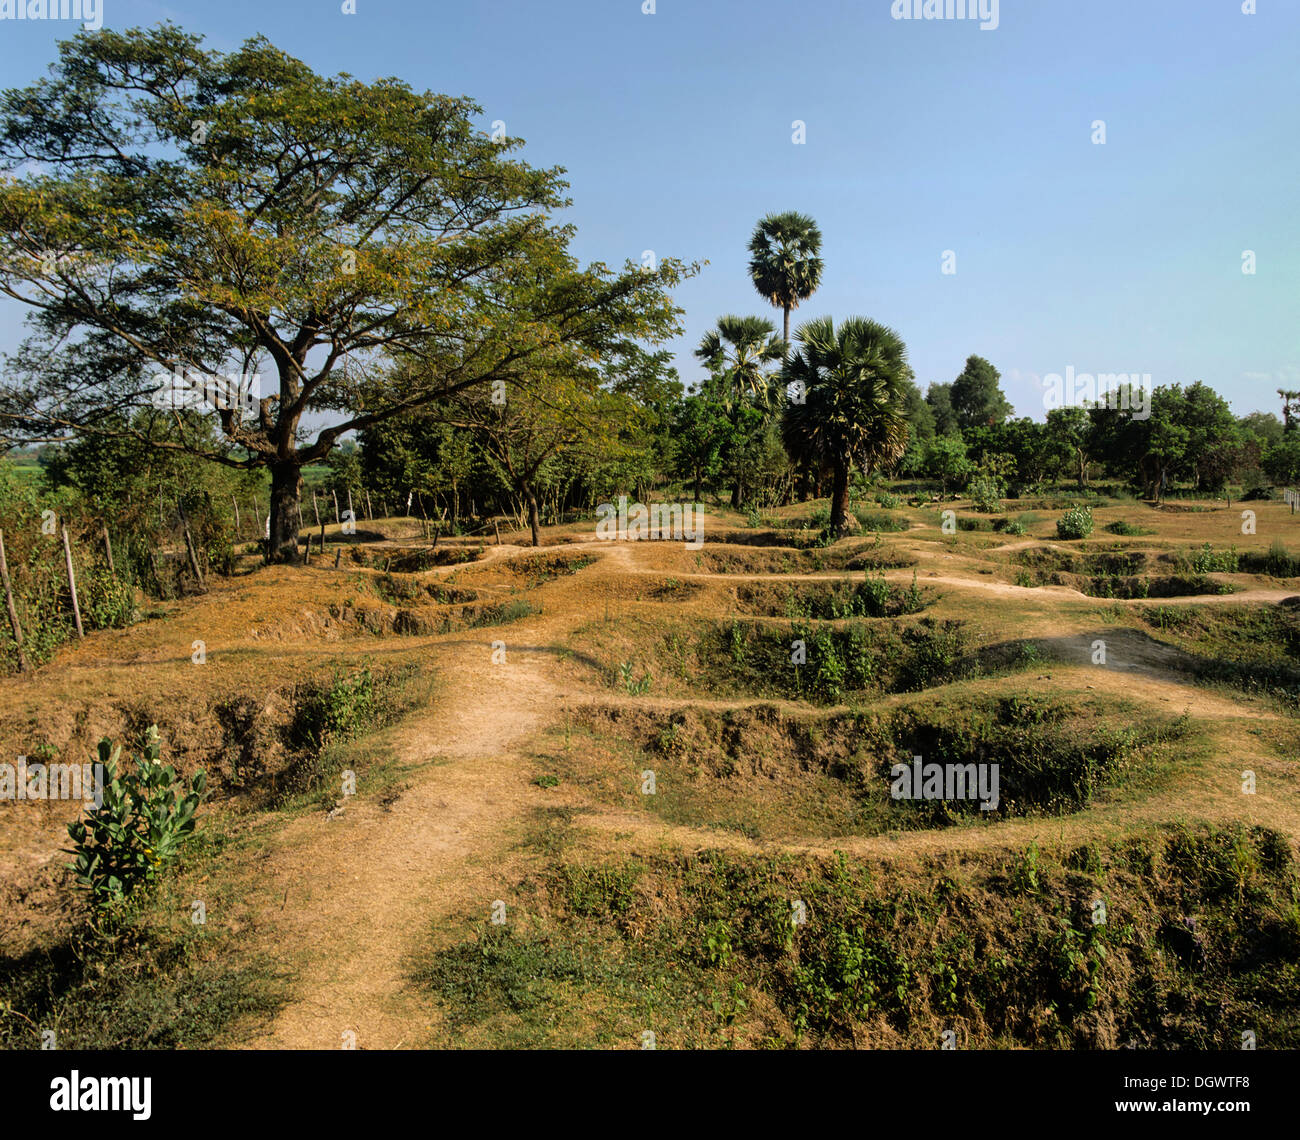 Choeung Ek, mass graves at the Killing Fields, victims of the Pol Pot regime and the Khmer Rouge, Choeung Ek, Phnom Penh - Stock Image